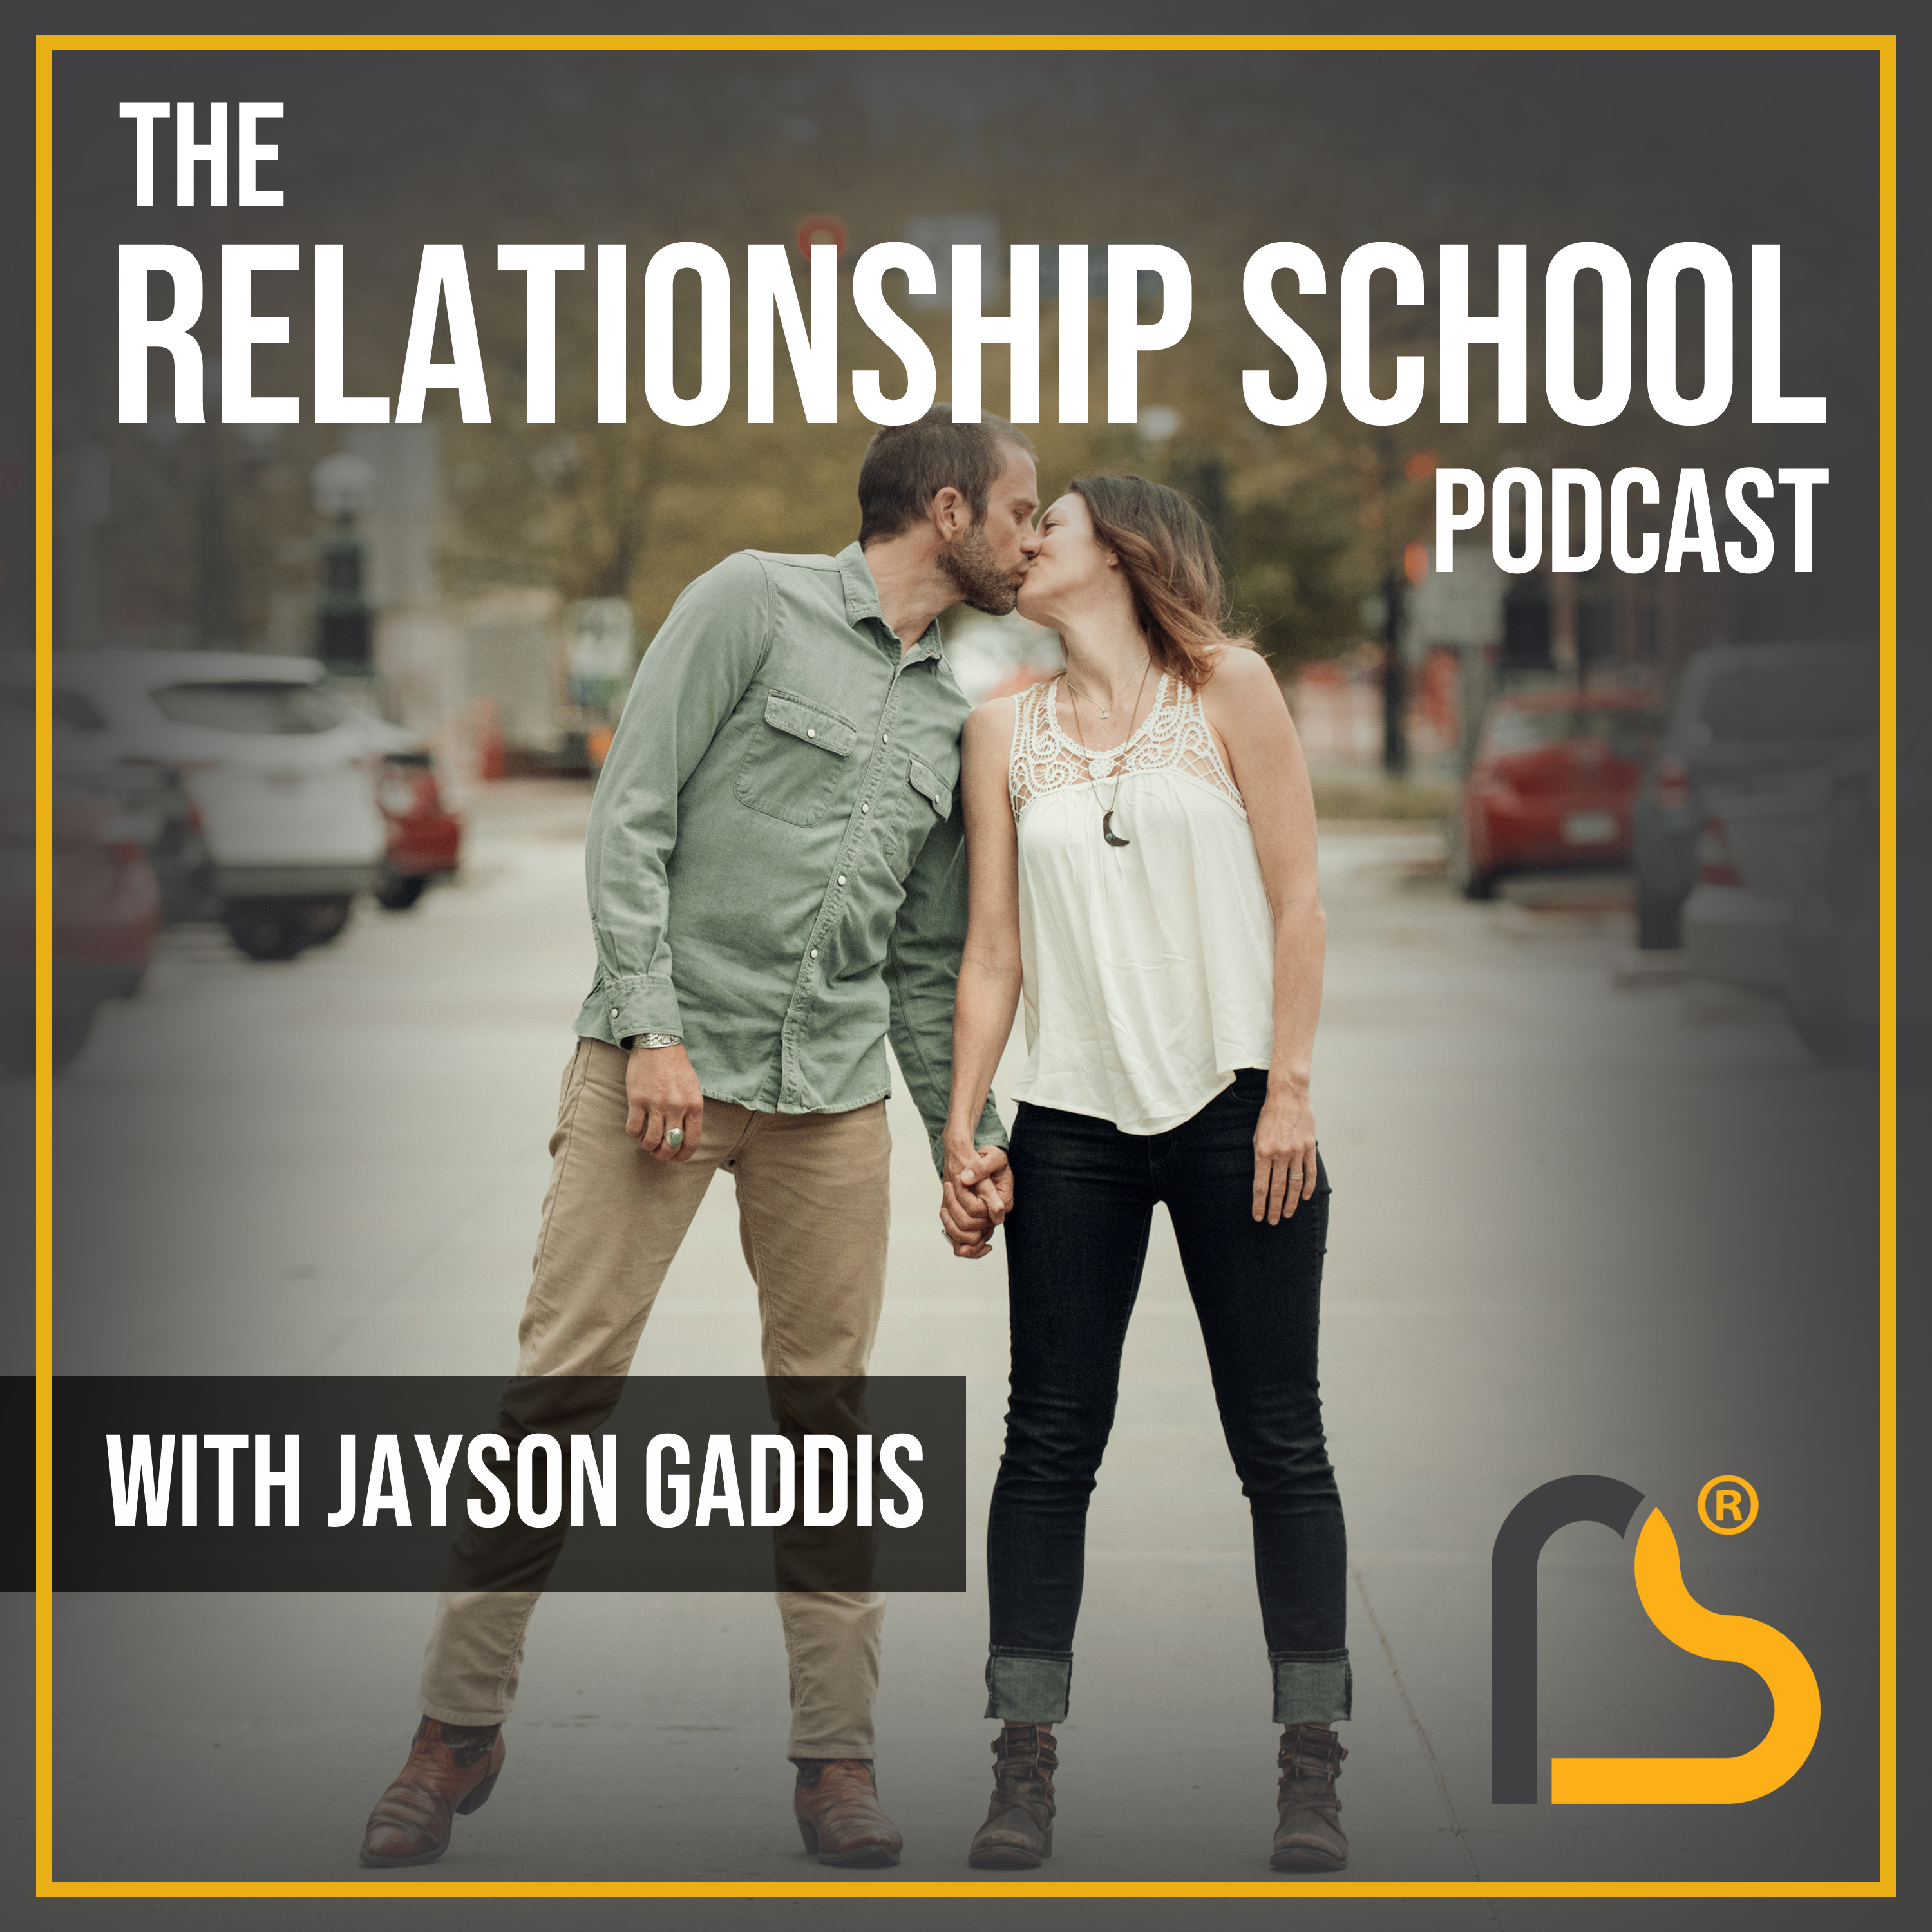 The Relationship School Podcast - 4 Non-Negotiable Needs Required For a Secure Partnership - 272